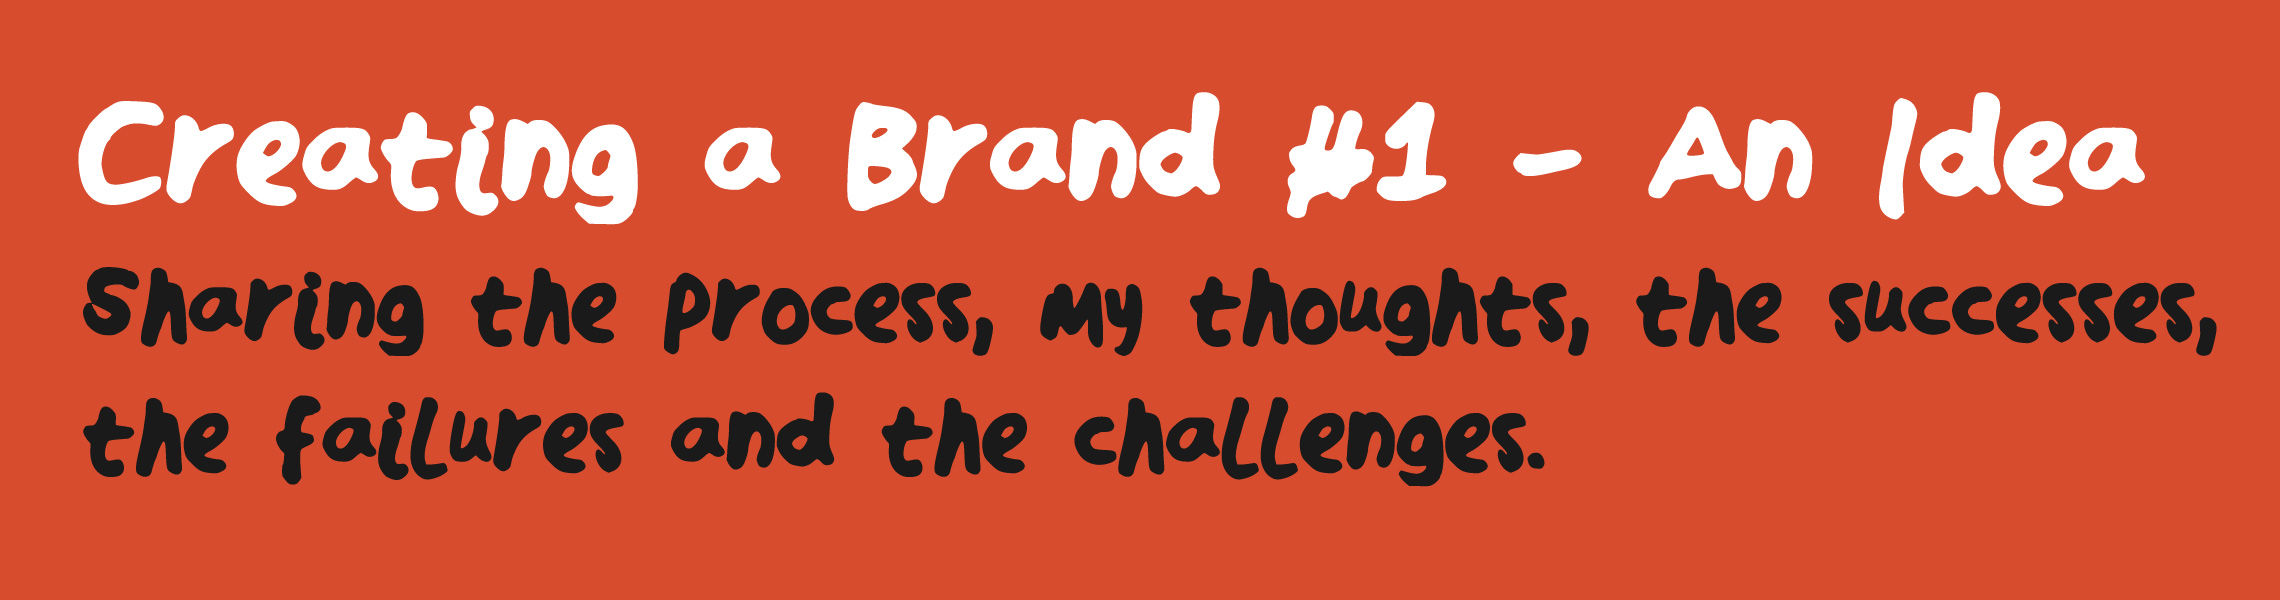 Creating a Brand #1